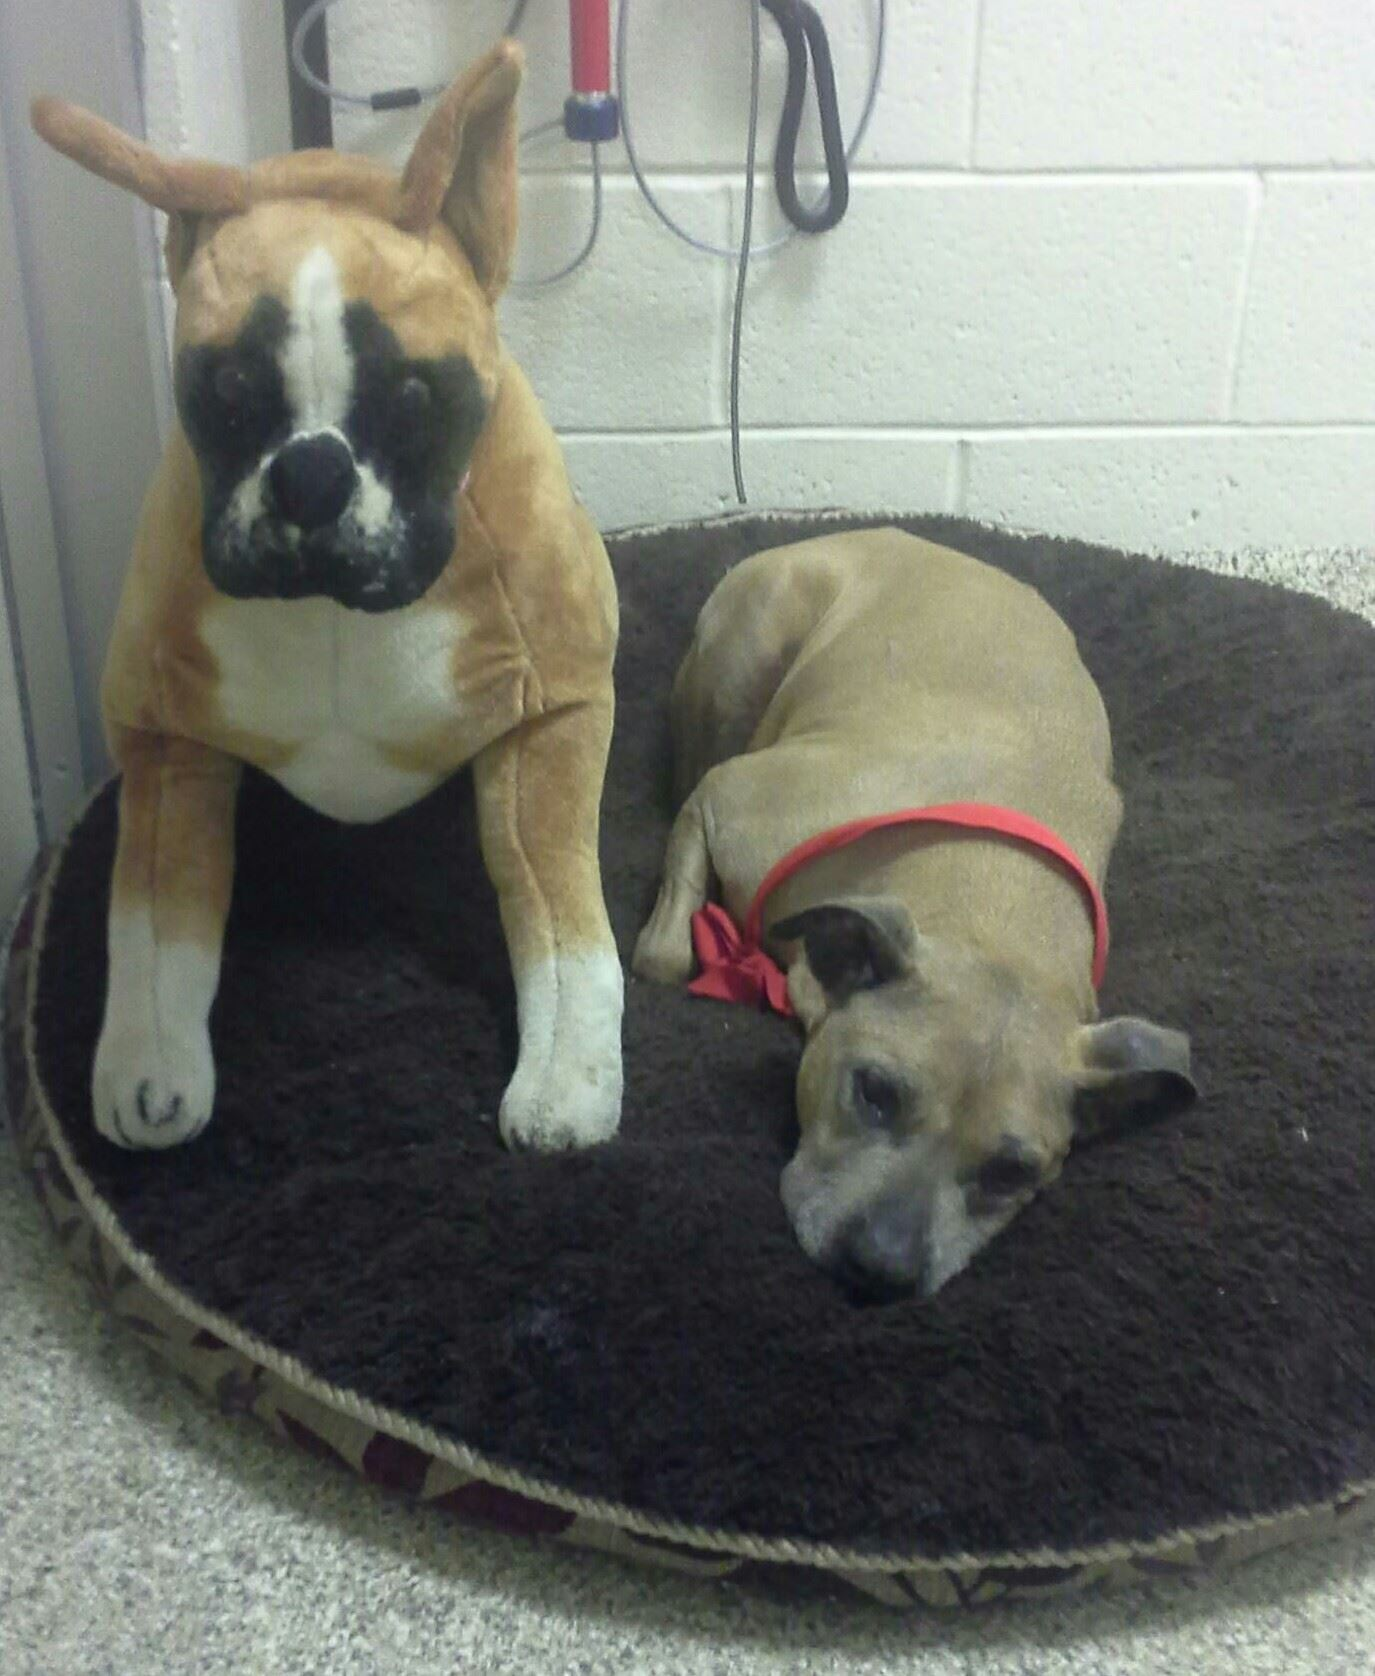 Diamond and her buddy wait patiently for the staff to have time to fuss over them!